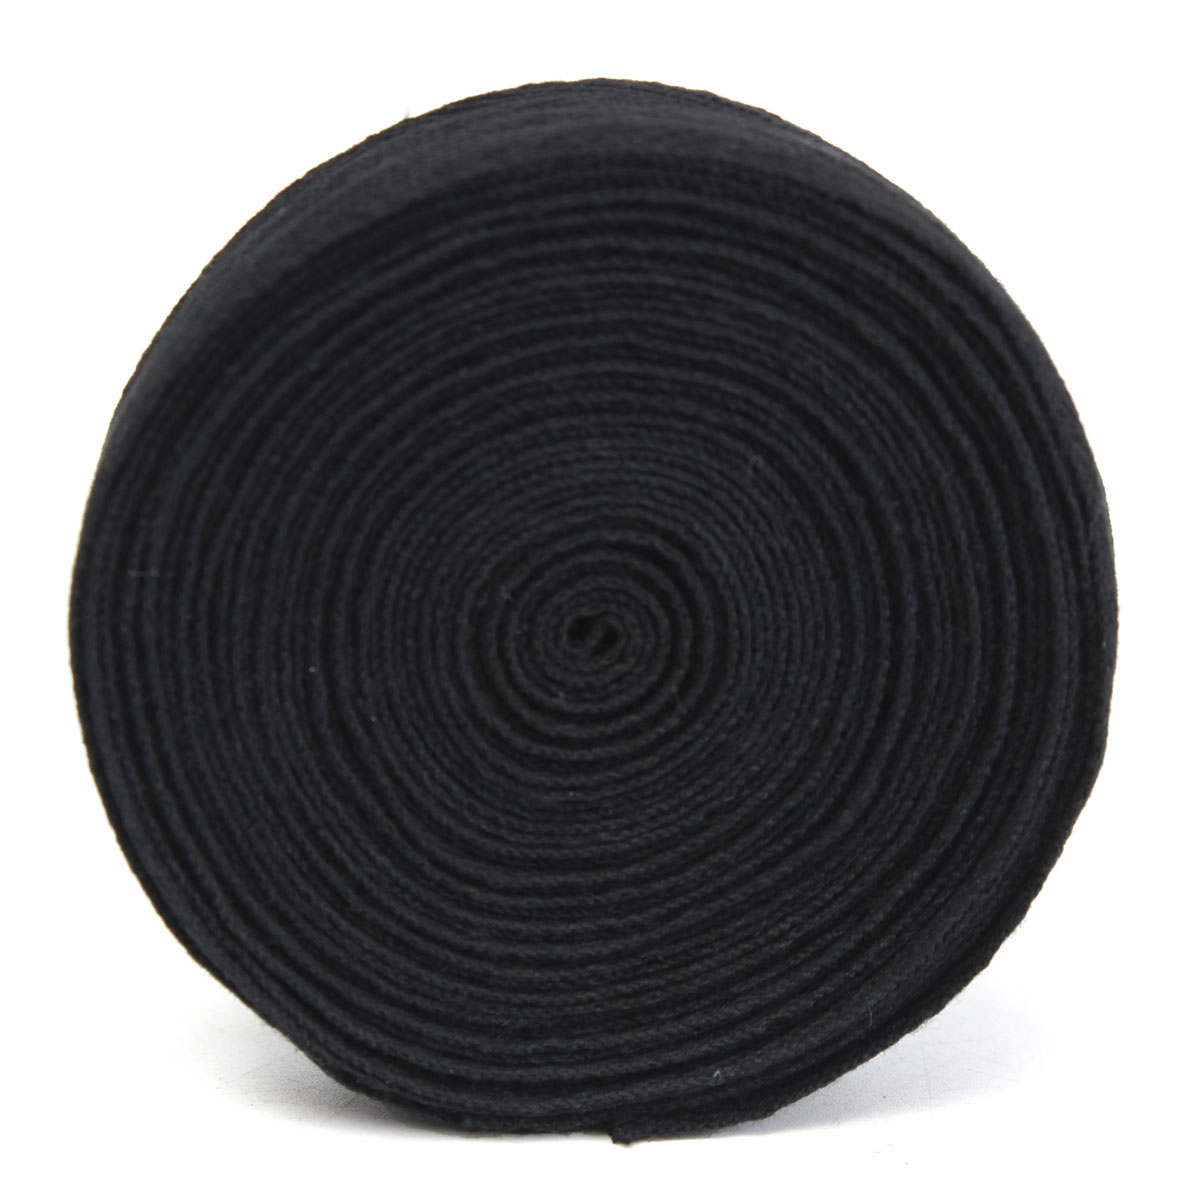 White apron tape - Product Details Of 25mmx5m Cotton Webbing Herringbone Twill Tape Strap For Sewing Diy Apron Bunting Black